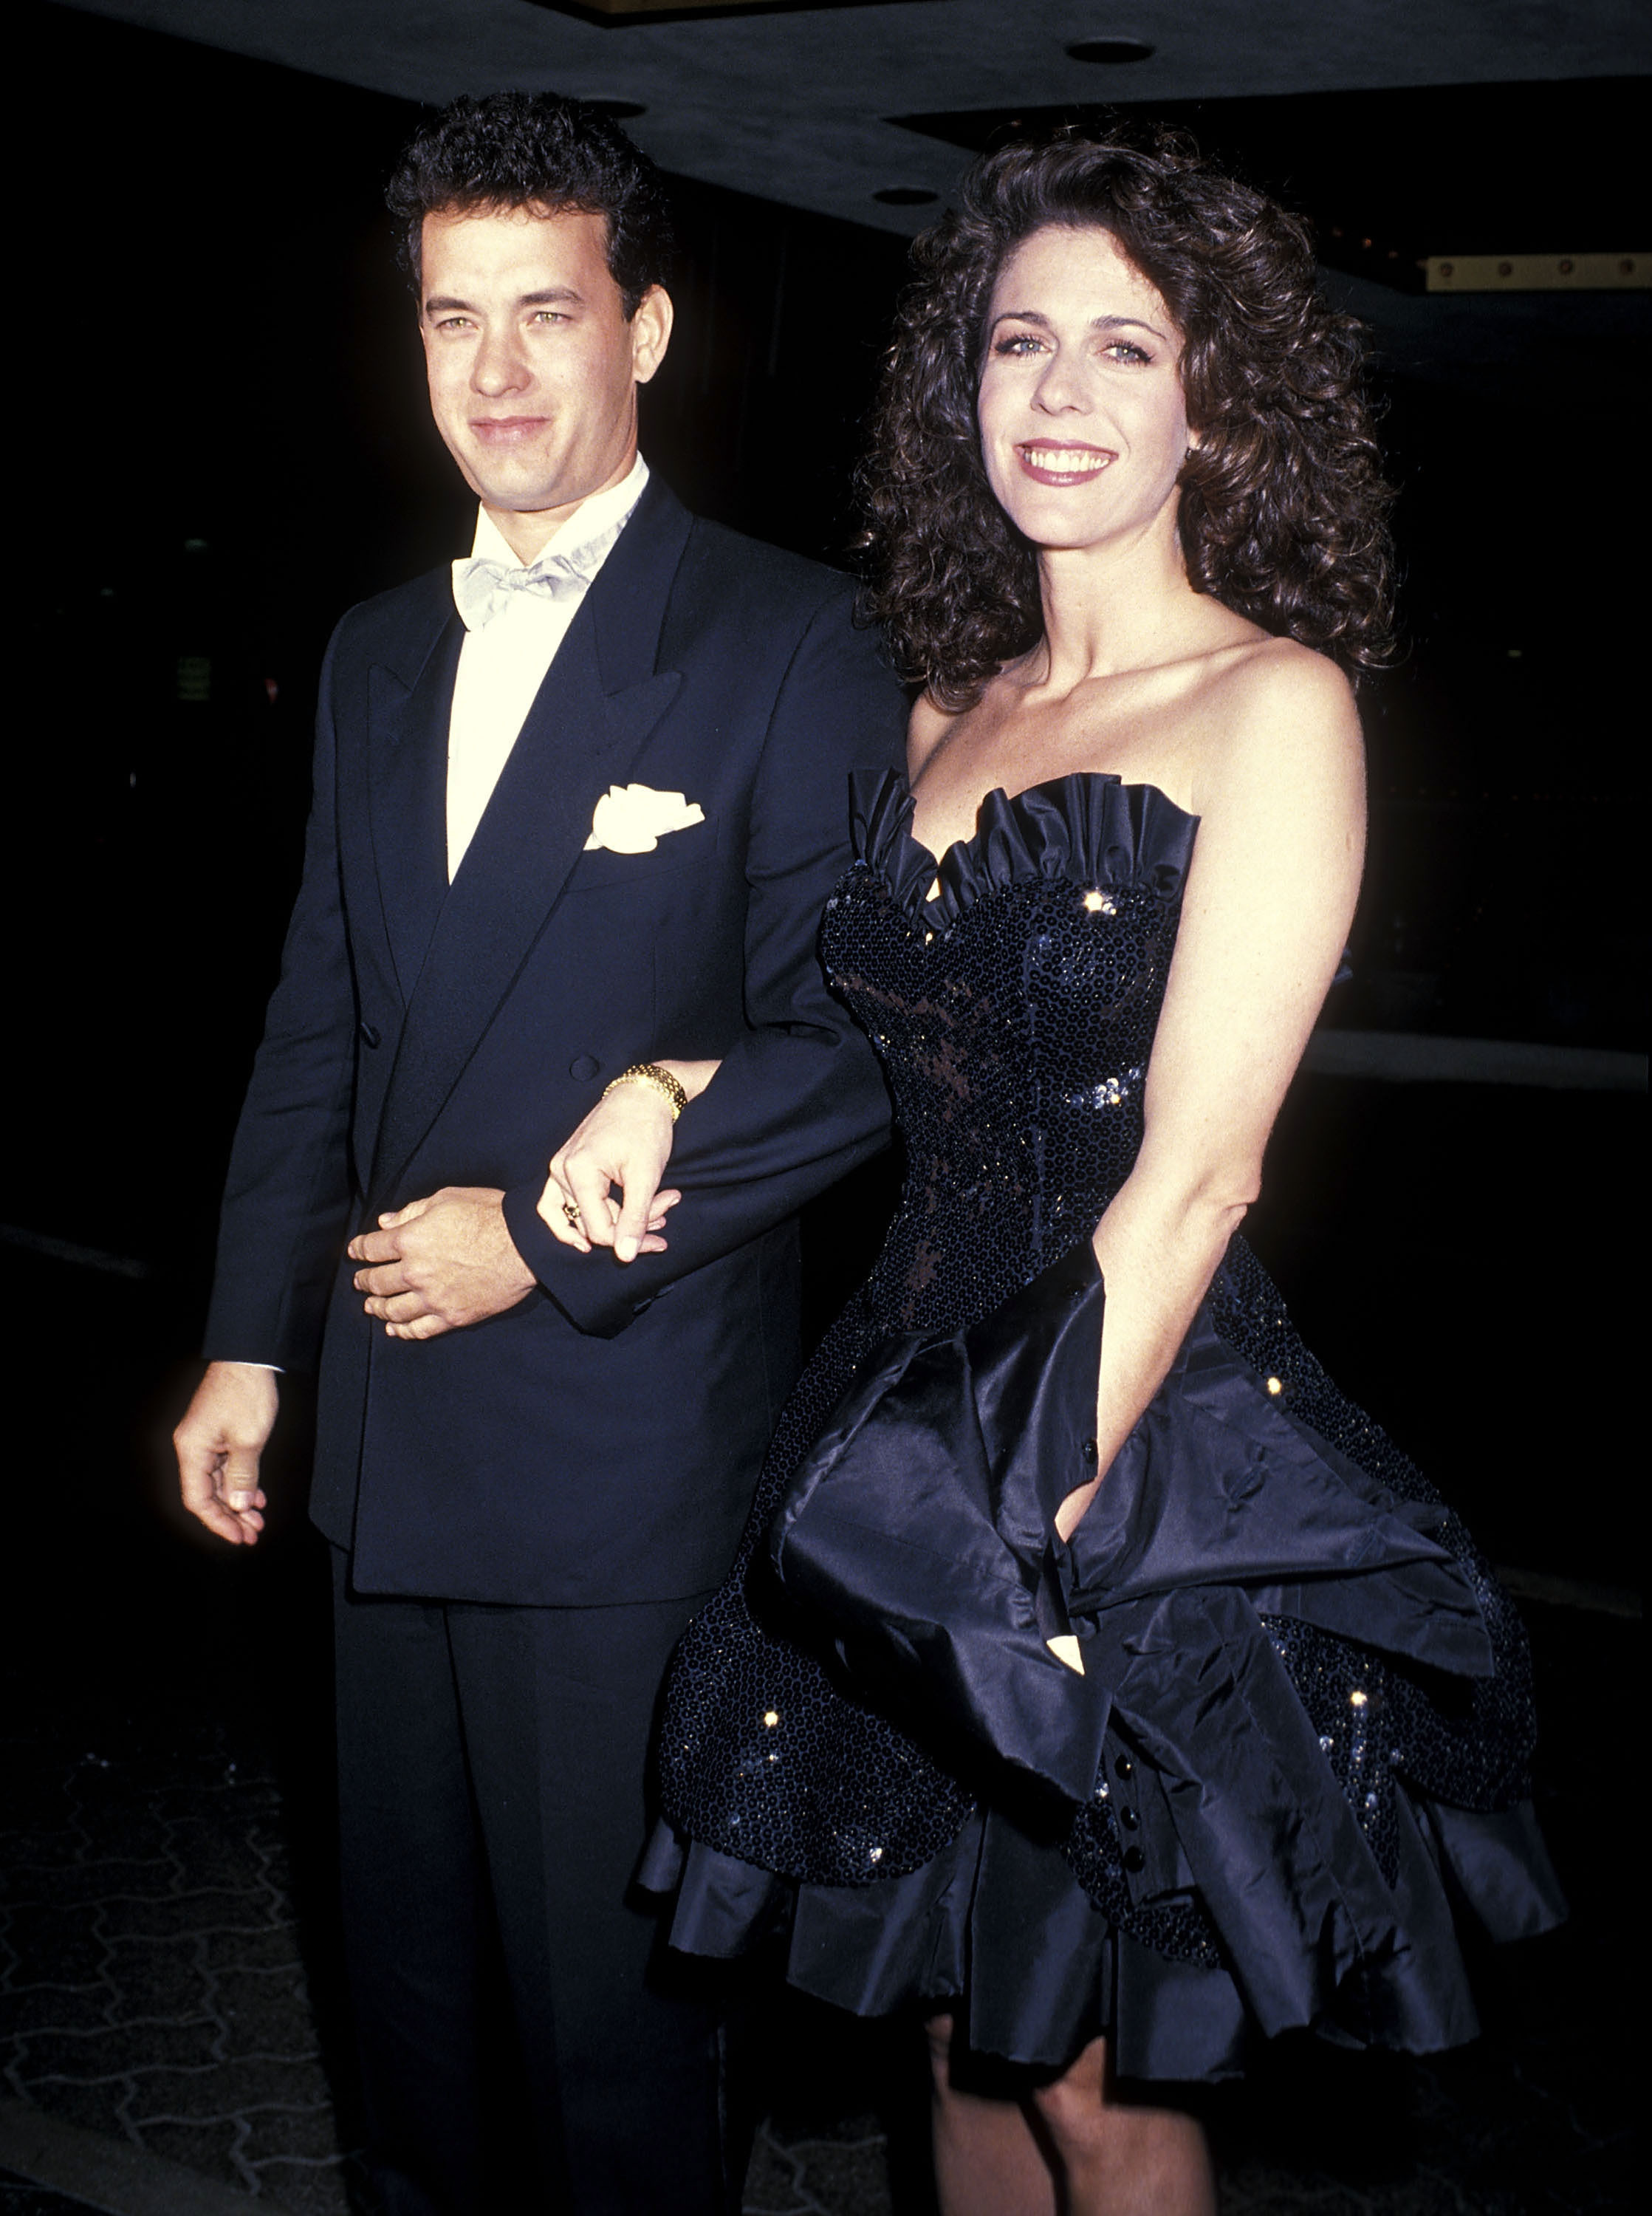 Actor Tom Hanks and actress Rita Wilson attend the 46th Annual Golden Globe Awards at the Beverly Hilton Hotel in Beverly Hills on Jan. 28, 1989.